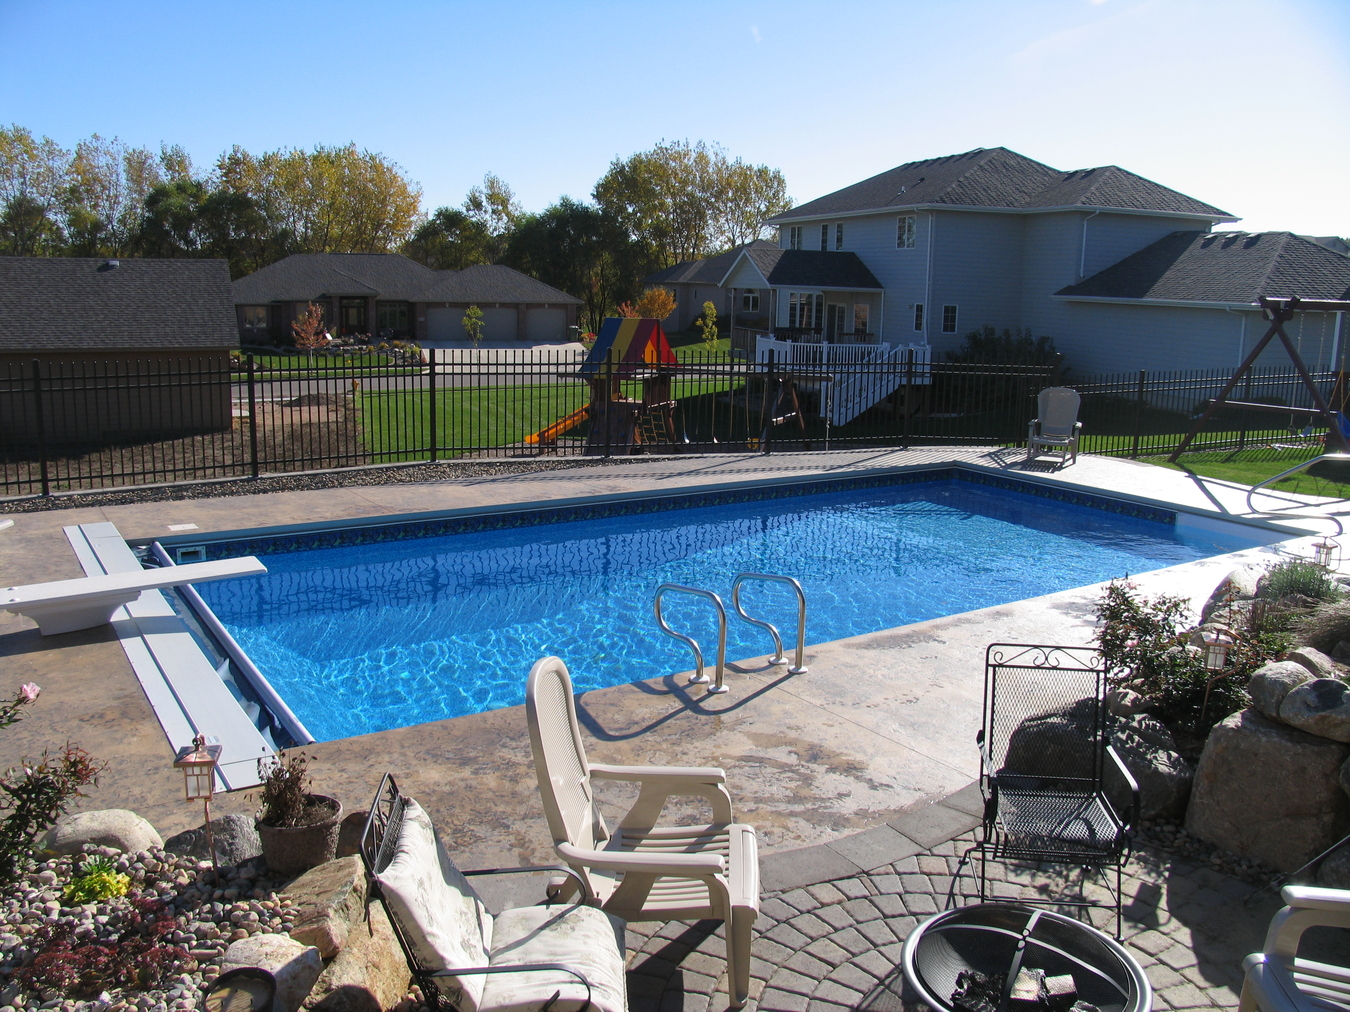 Jacuzzi Pool In Ground Inground Pools Hot Tubs Sioux Falls Brookings Mitchell Swim